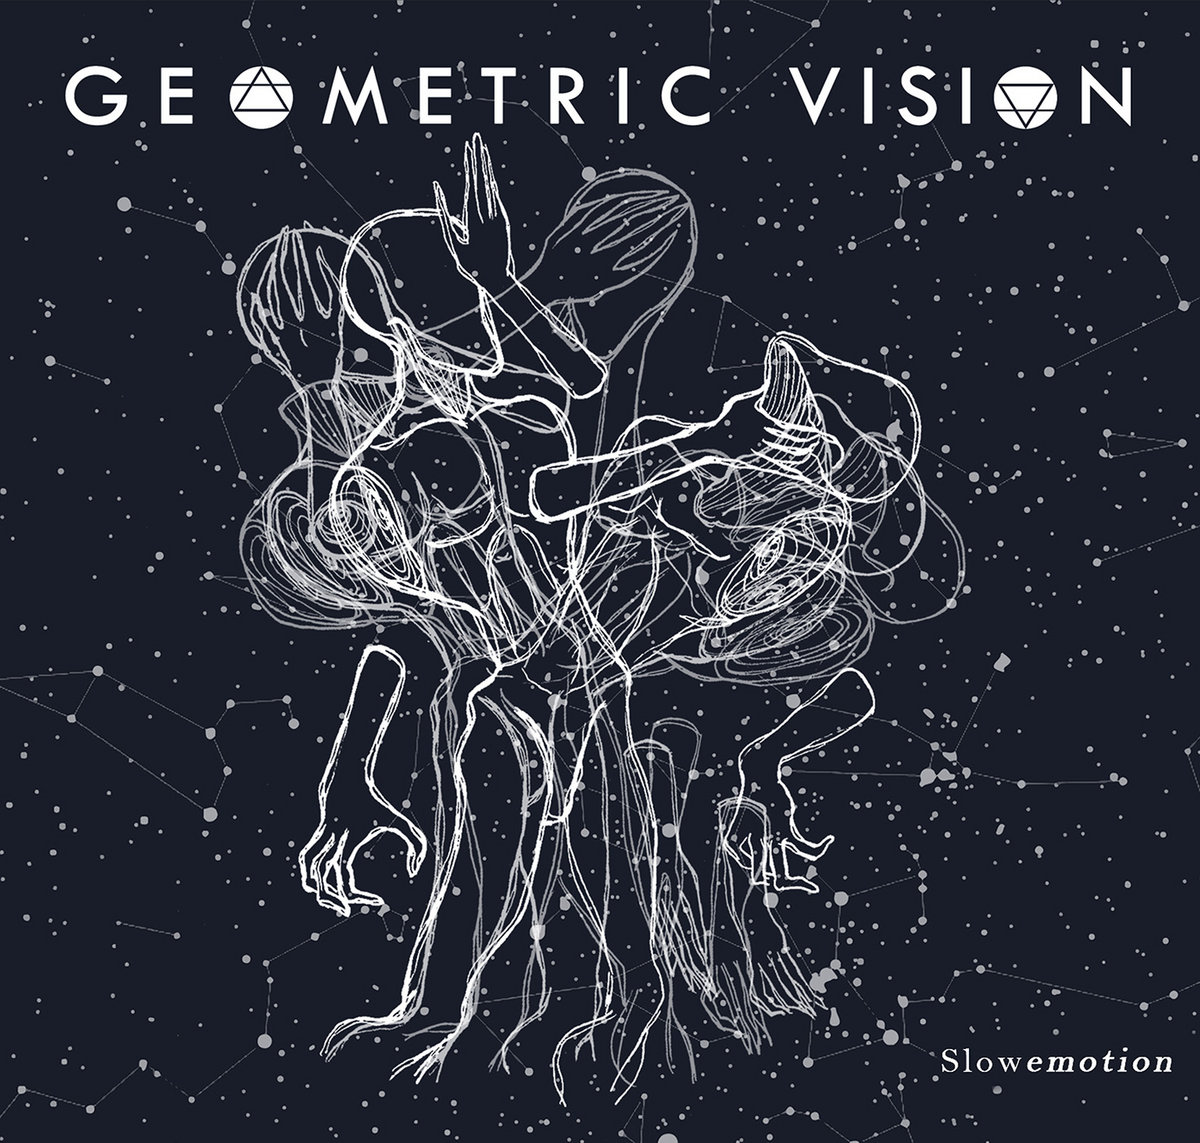 Geometric Vision cover